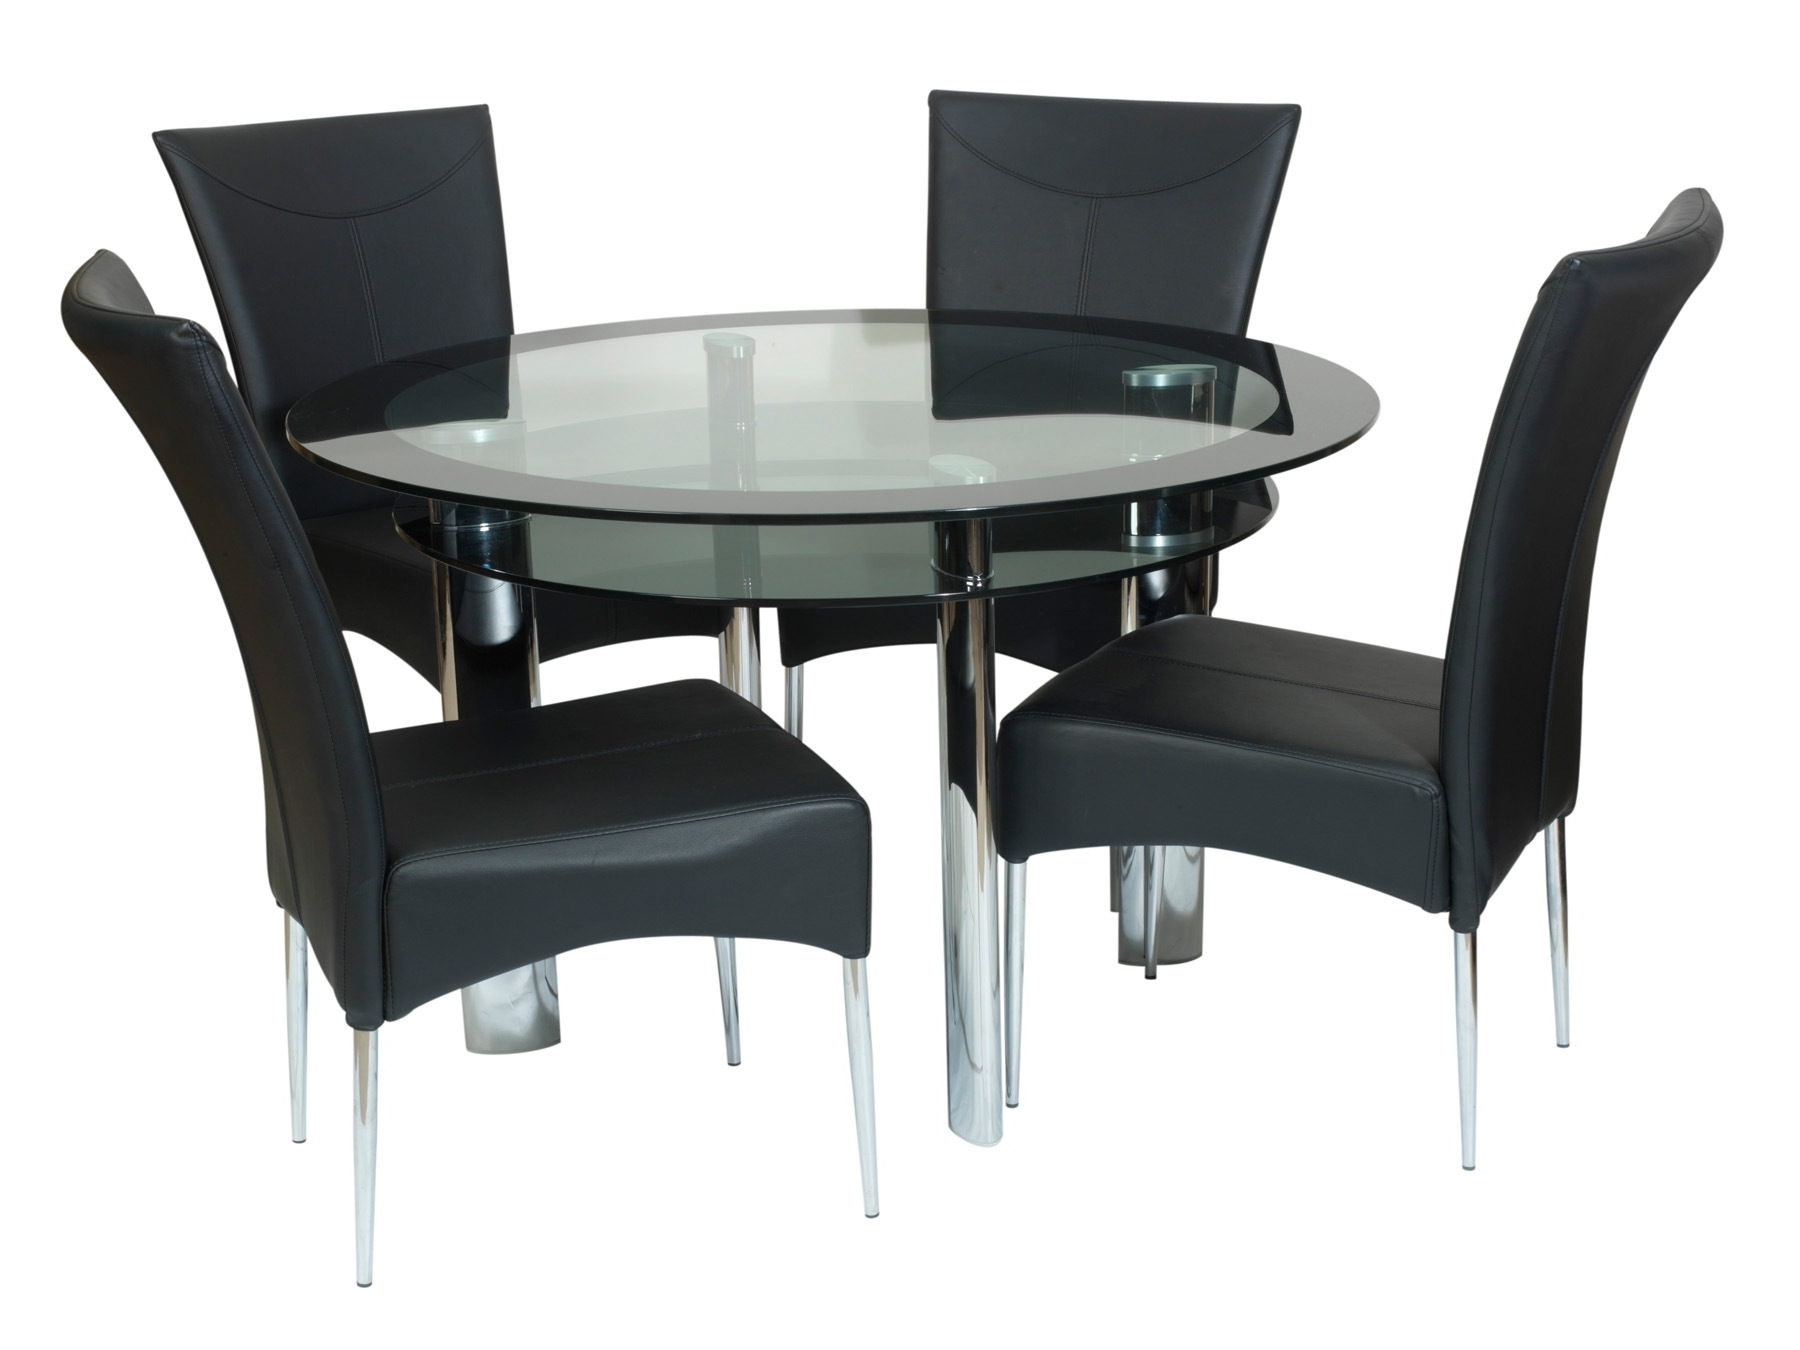 Round Black Glass Dining Tables And 4 Chairs Throughout Well Known Coco Round Black Glass Dining Table With 4 Chairs (View 3 of 25)